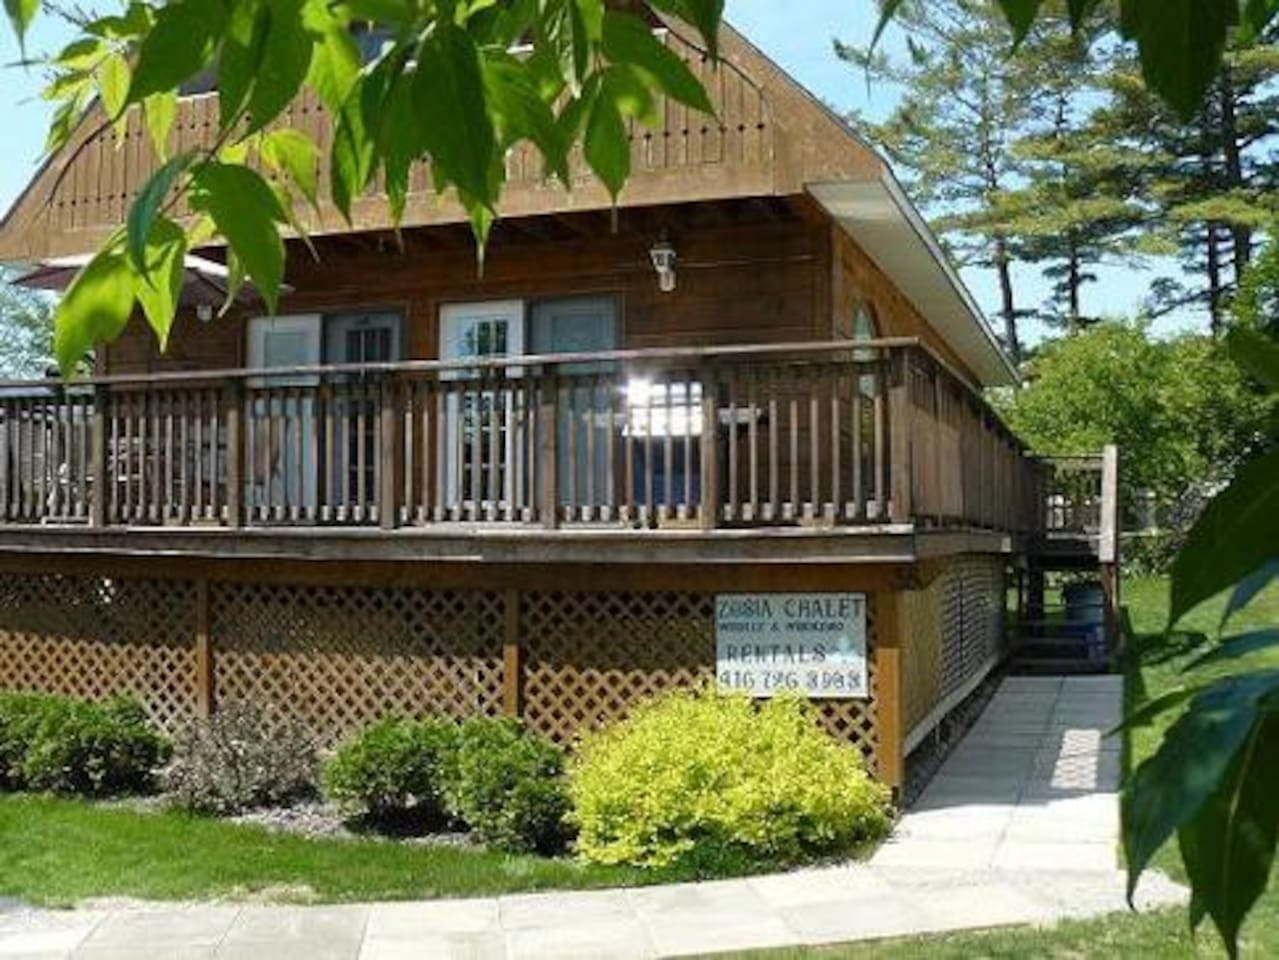 rentals cottage canada and for wasaga rent ontario in summer chalets winter beach cottages rooms barrie chalet zosia